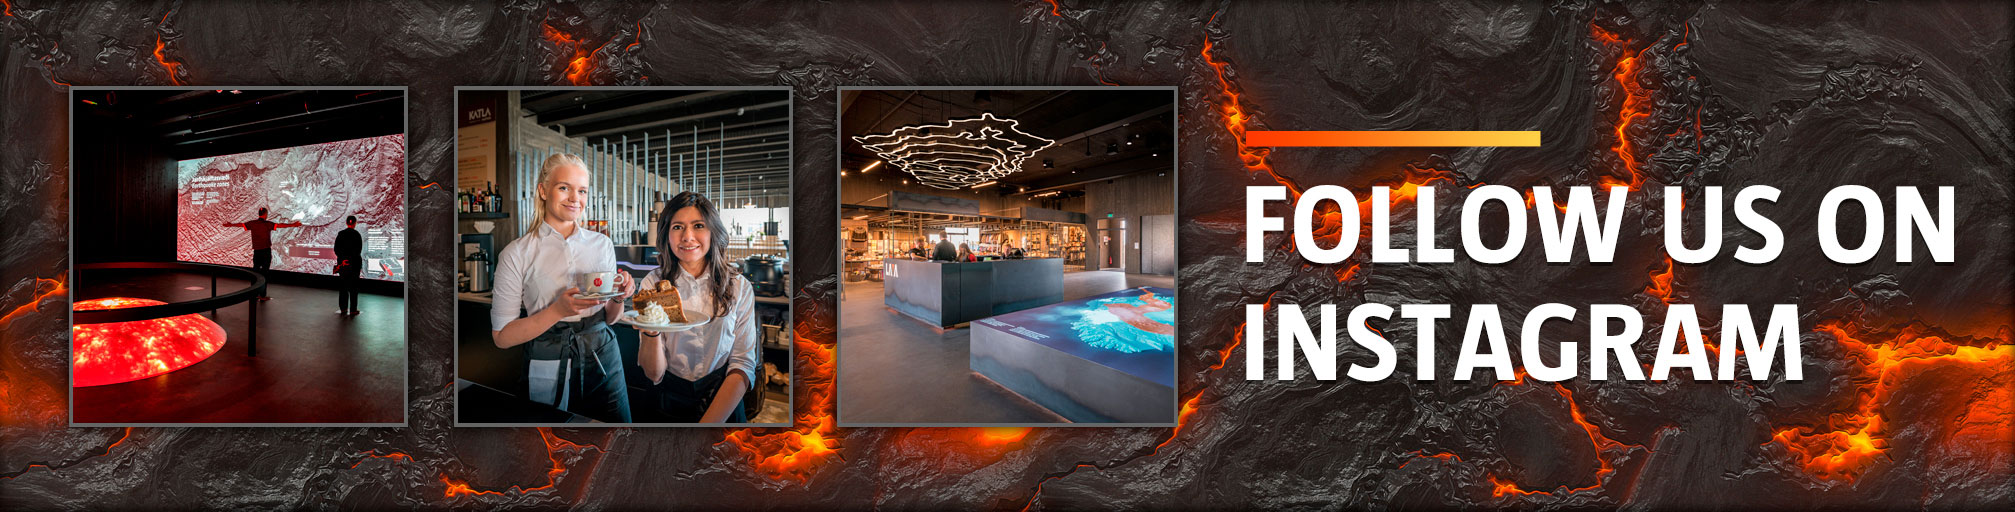 Lava Centre, museum and Exhibition Center about Iceland Volcanoes